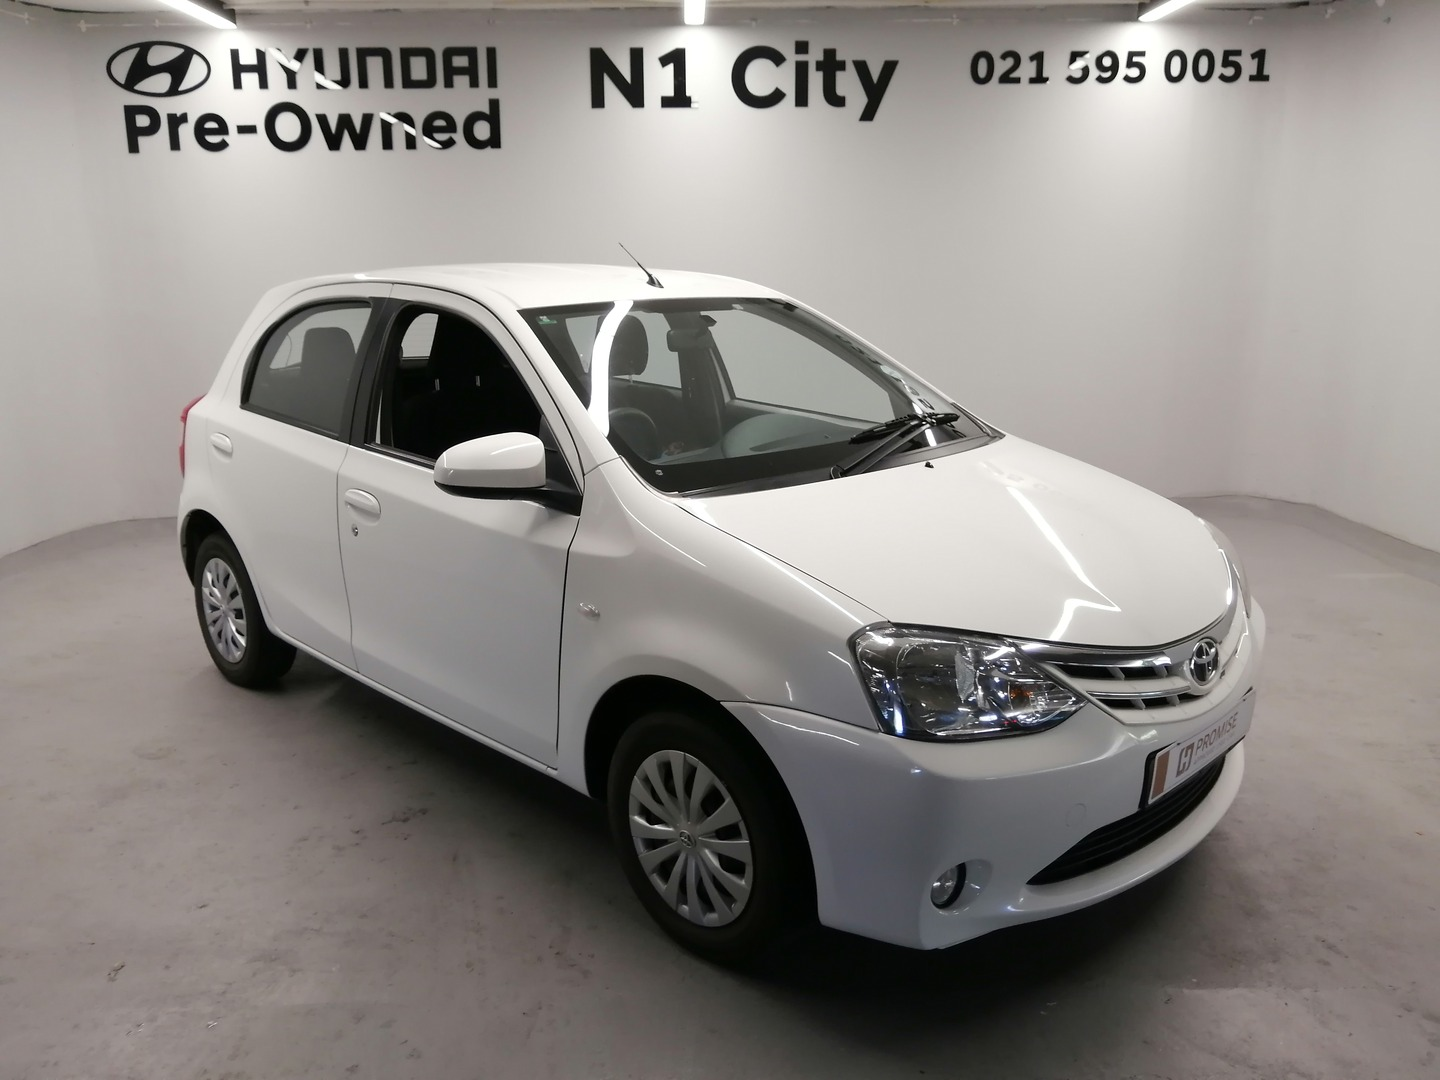 TOYOTA 1.5 Xs/SPRINT 5Dr Cape Town 5325741